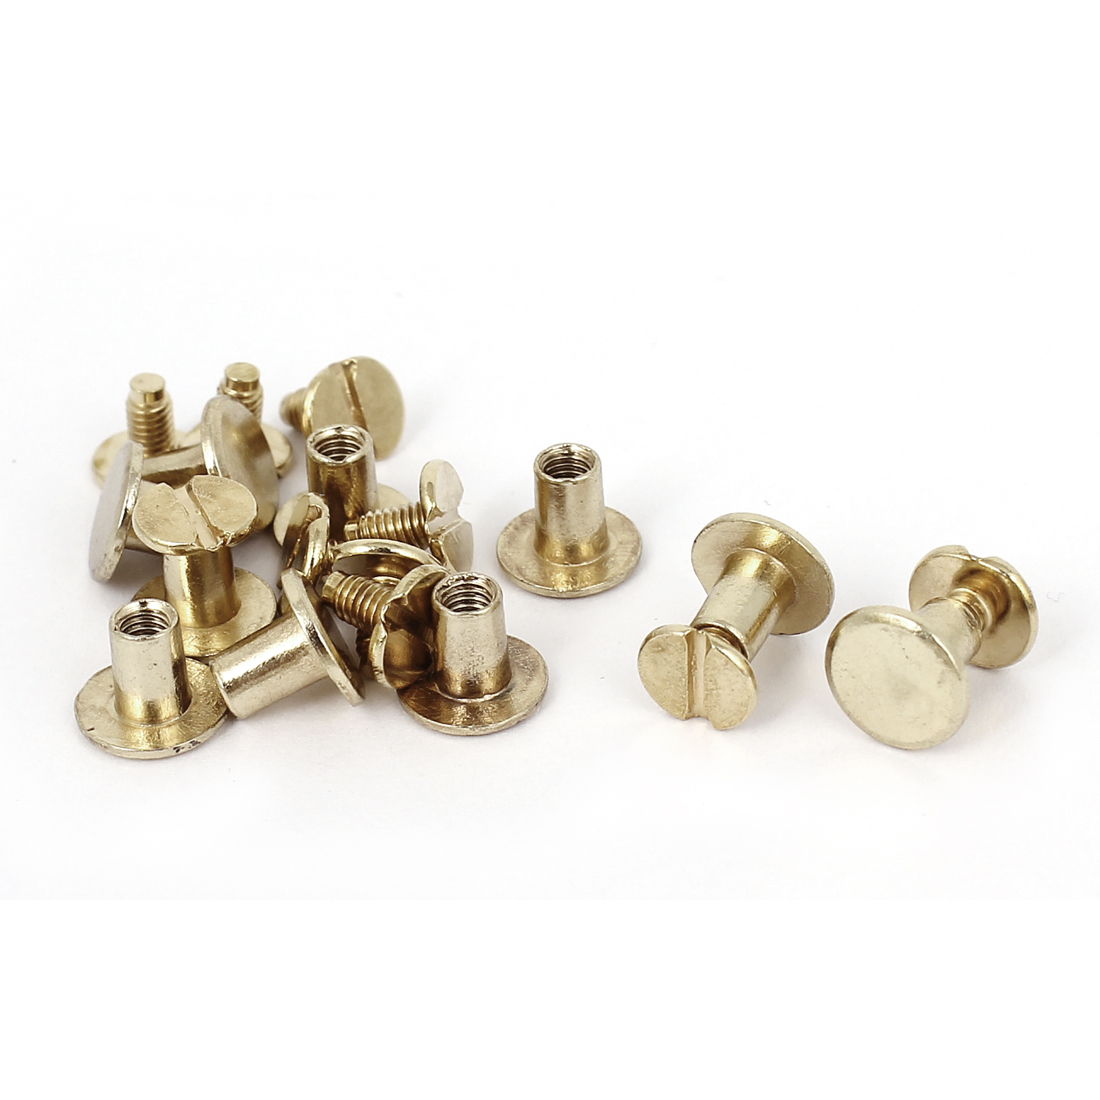 4.5x6.5mm Brass Plated Binding Chicago Screw Post For Leather Purse Belt 10pcs